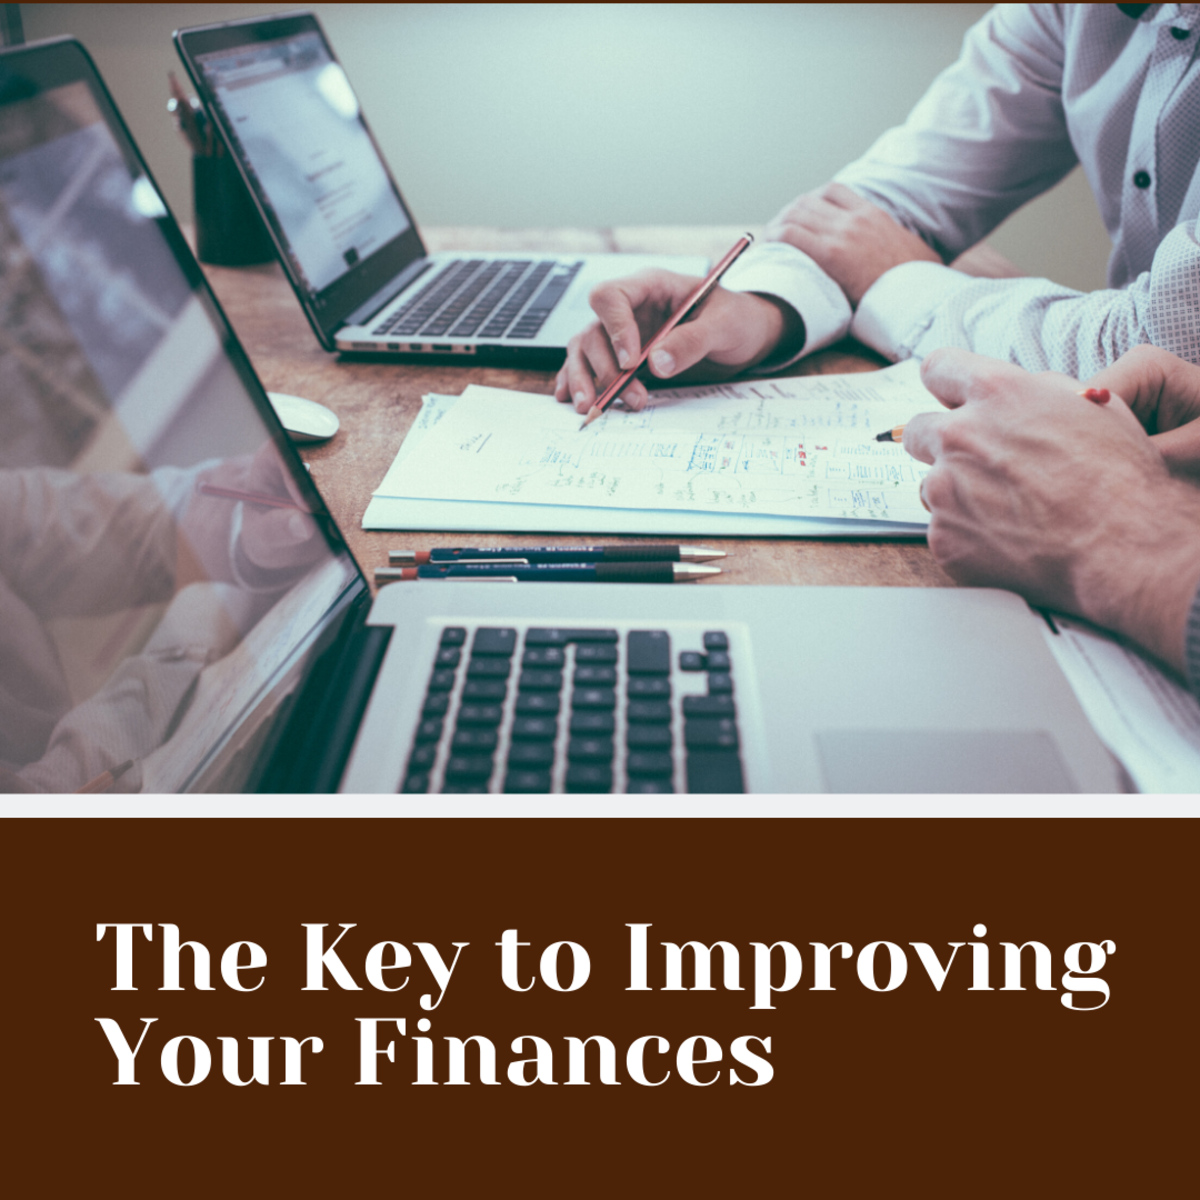 Read on to learn why awareness is the key to improving your finances.